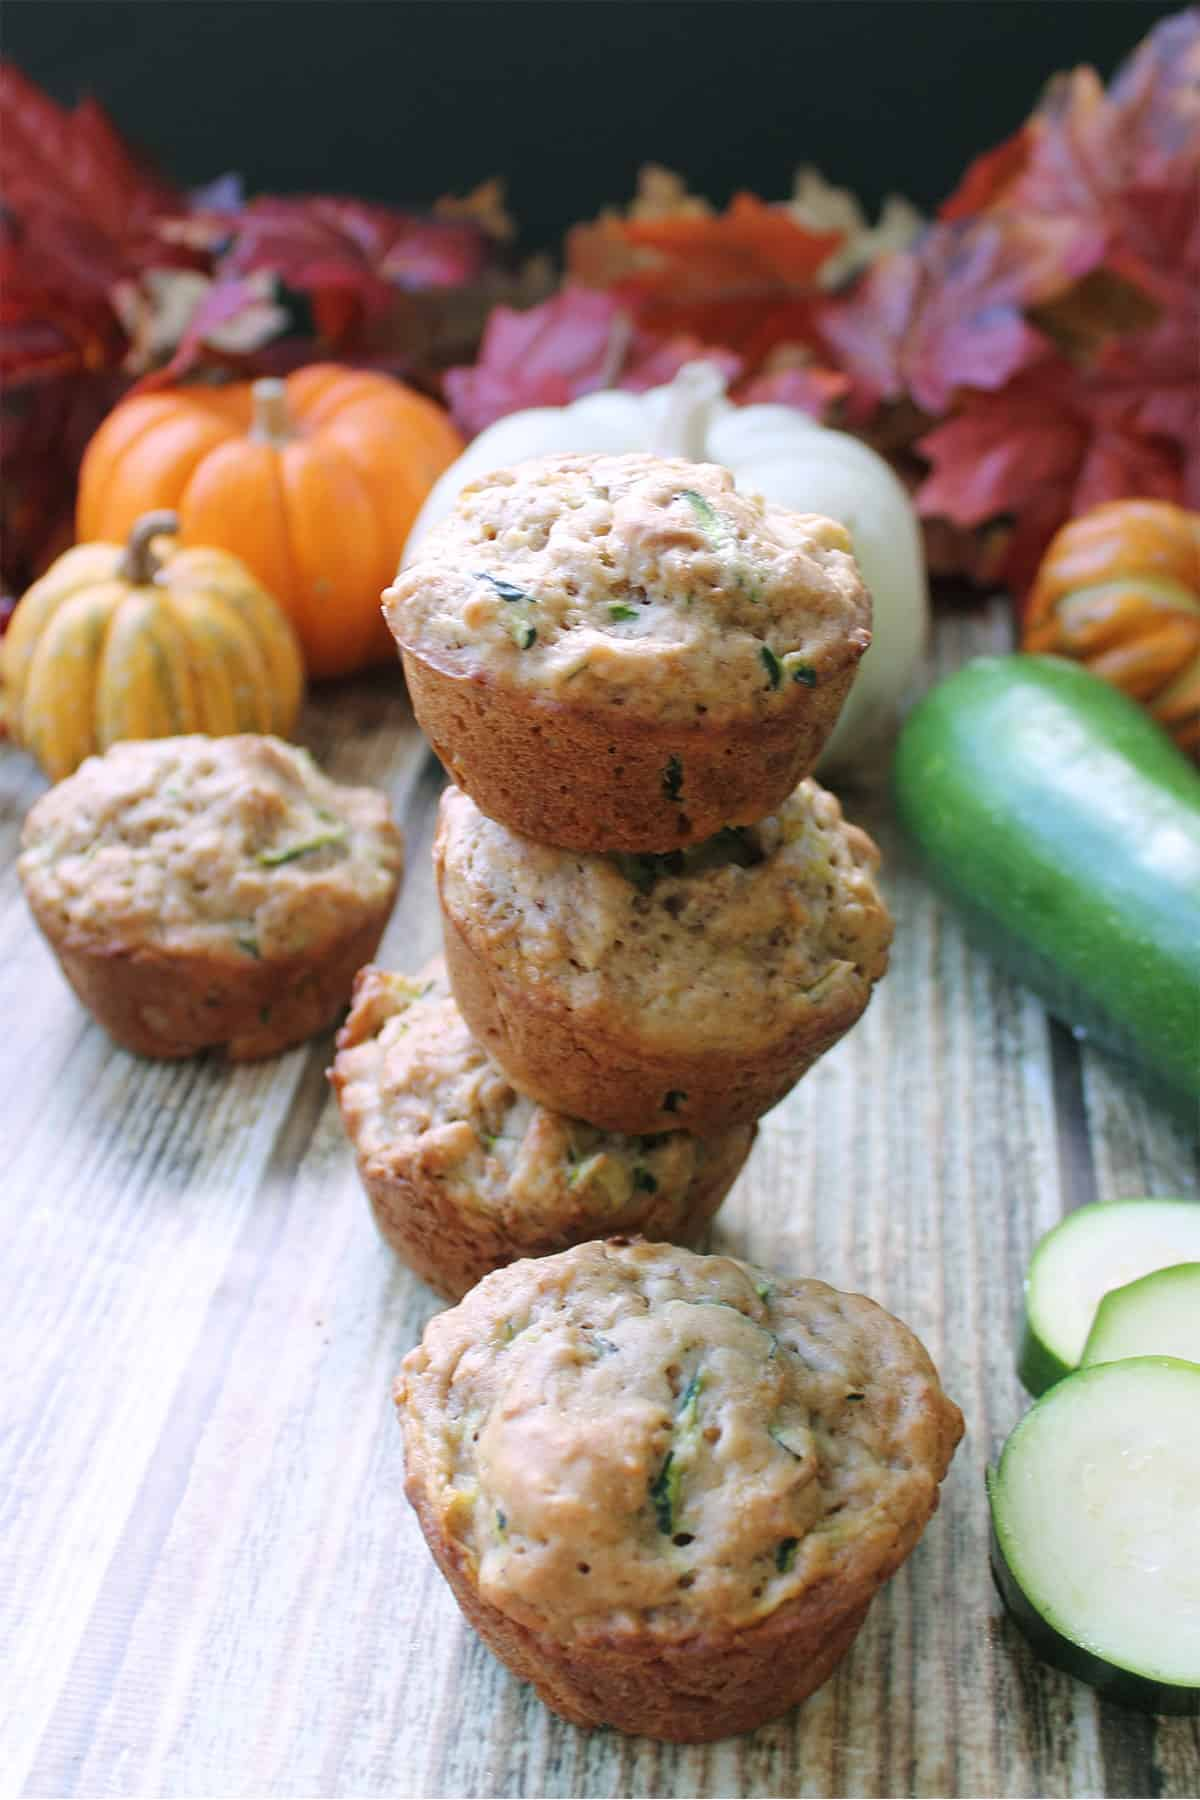 Stacked zucchini bran muffins on wooden table with fall leaves and pumpkin in back.